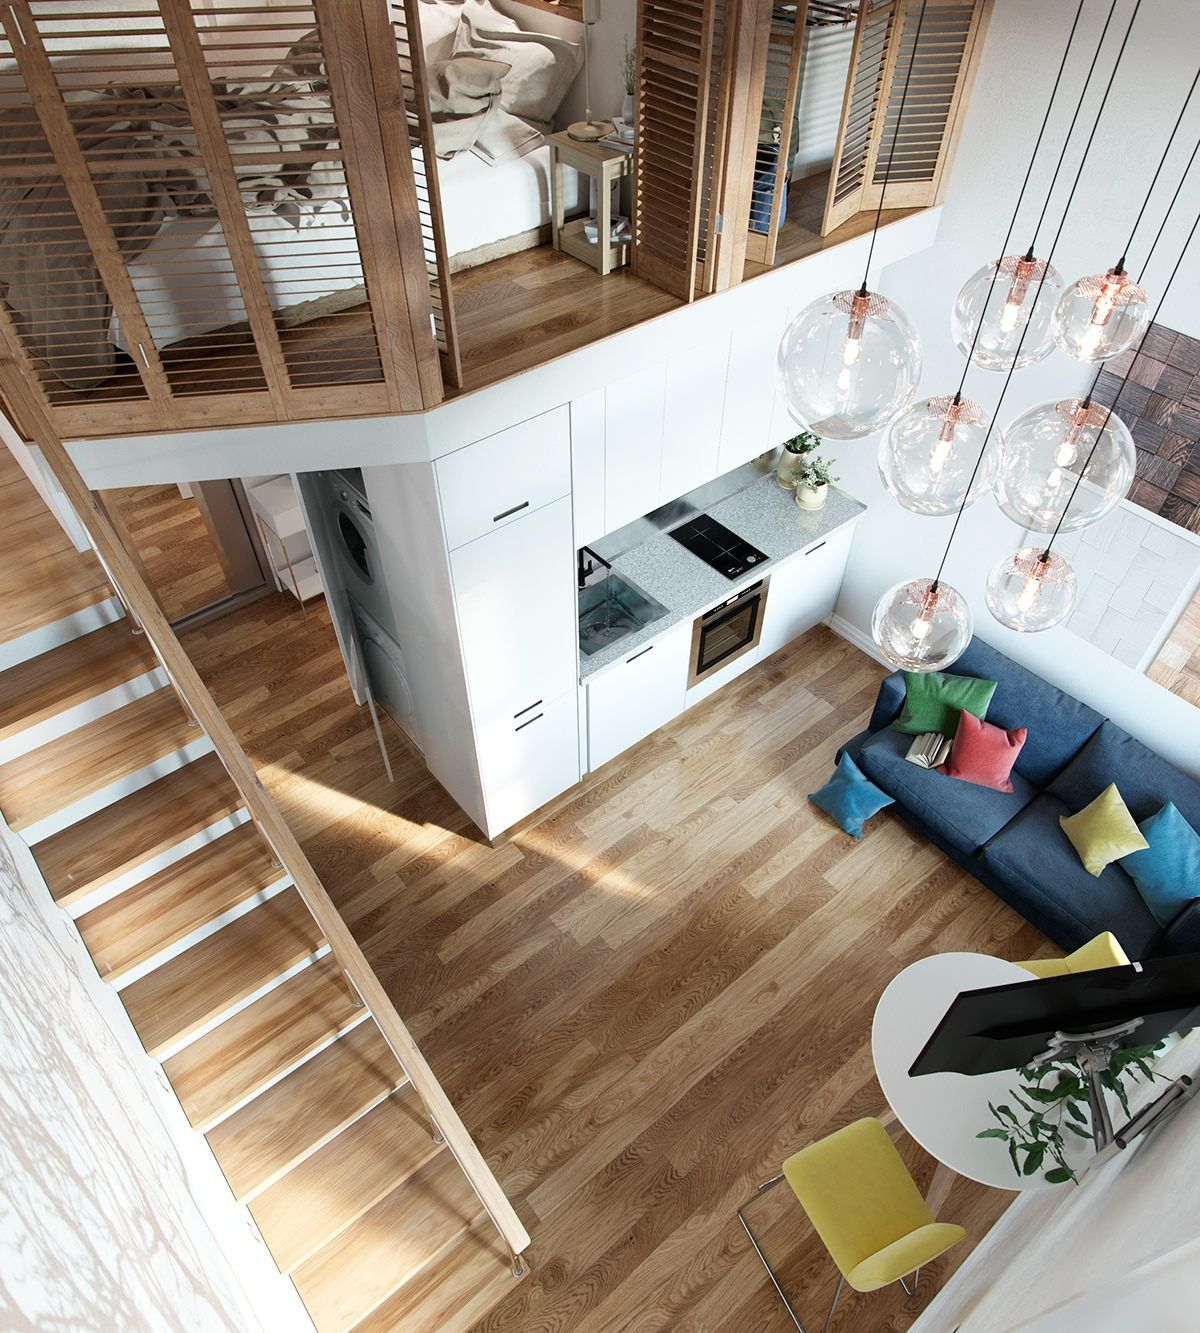 Studio Apartment Vs Loft the sky is the limit when tall ceilings meet compact floor plans